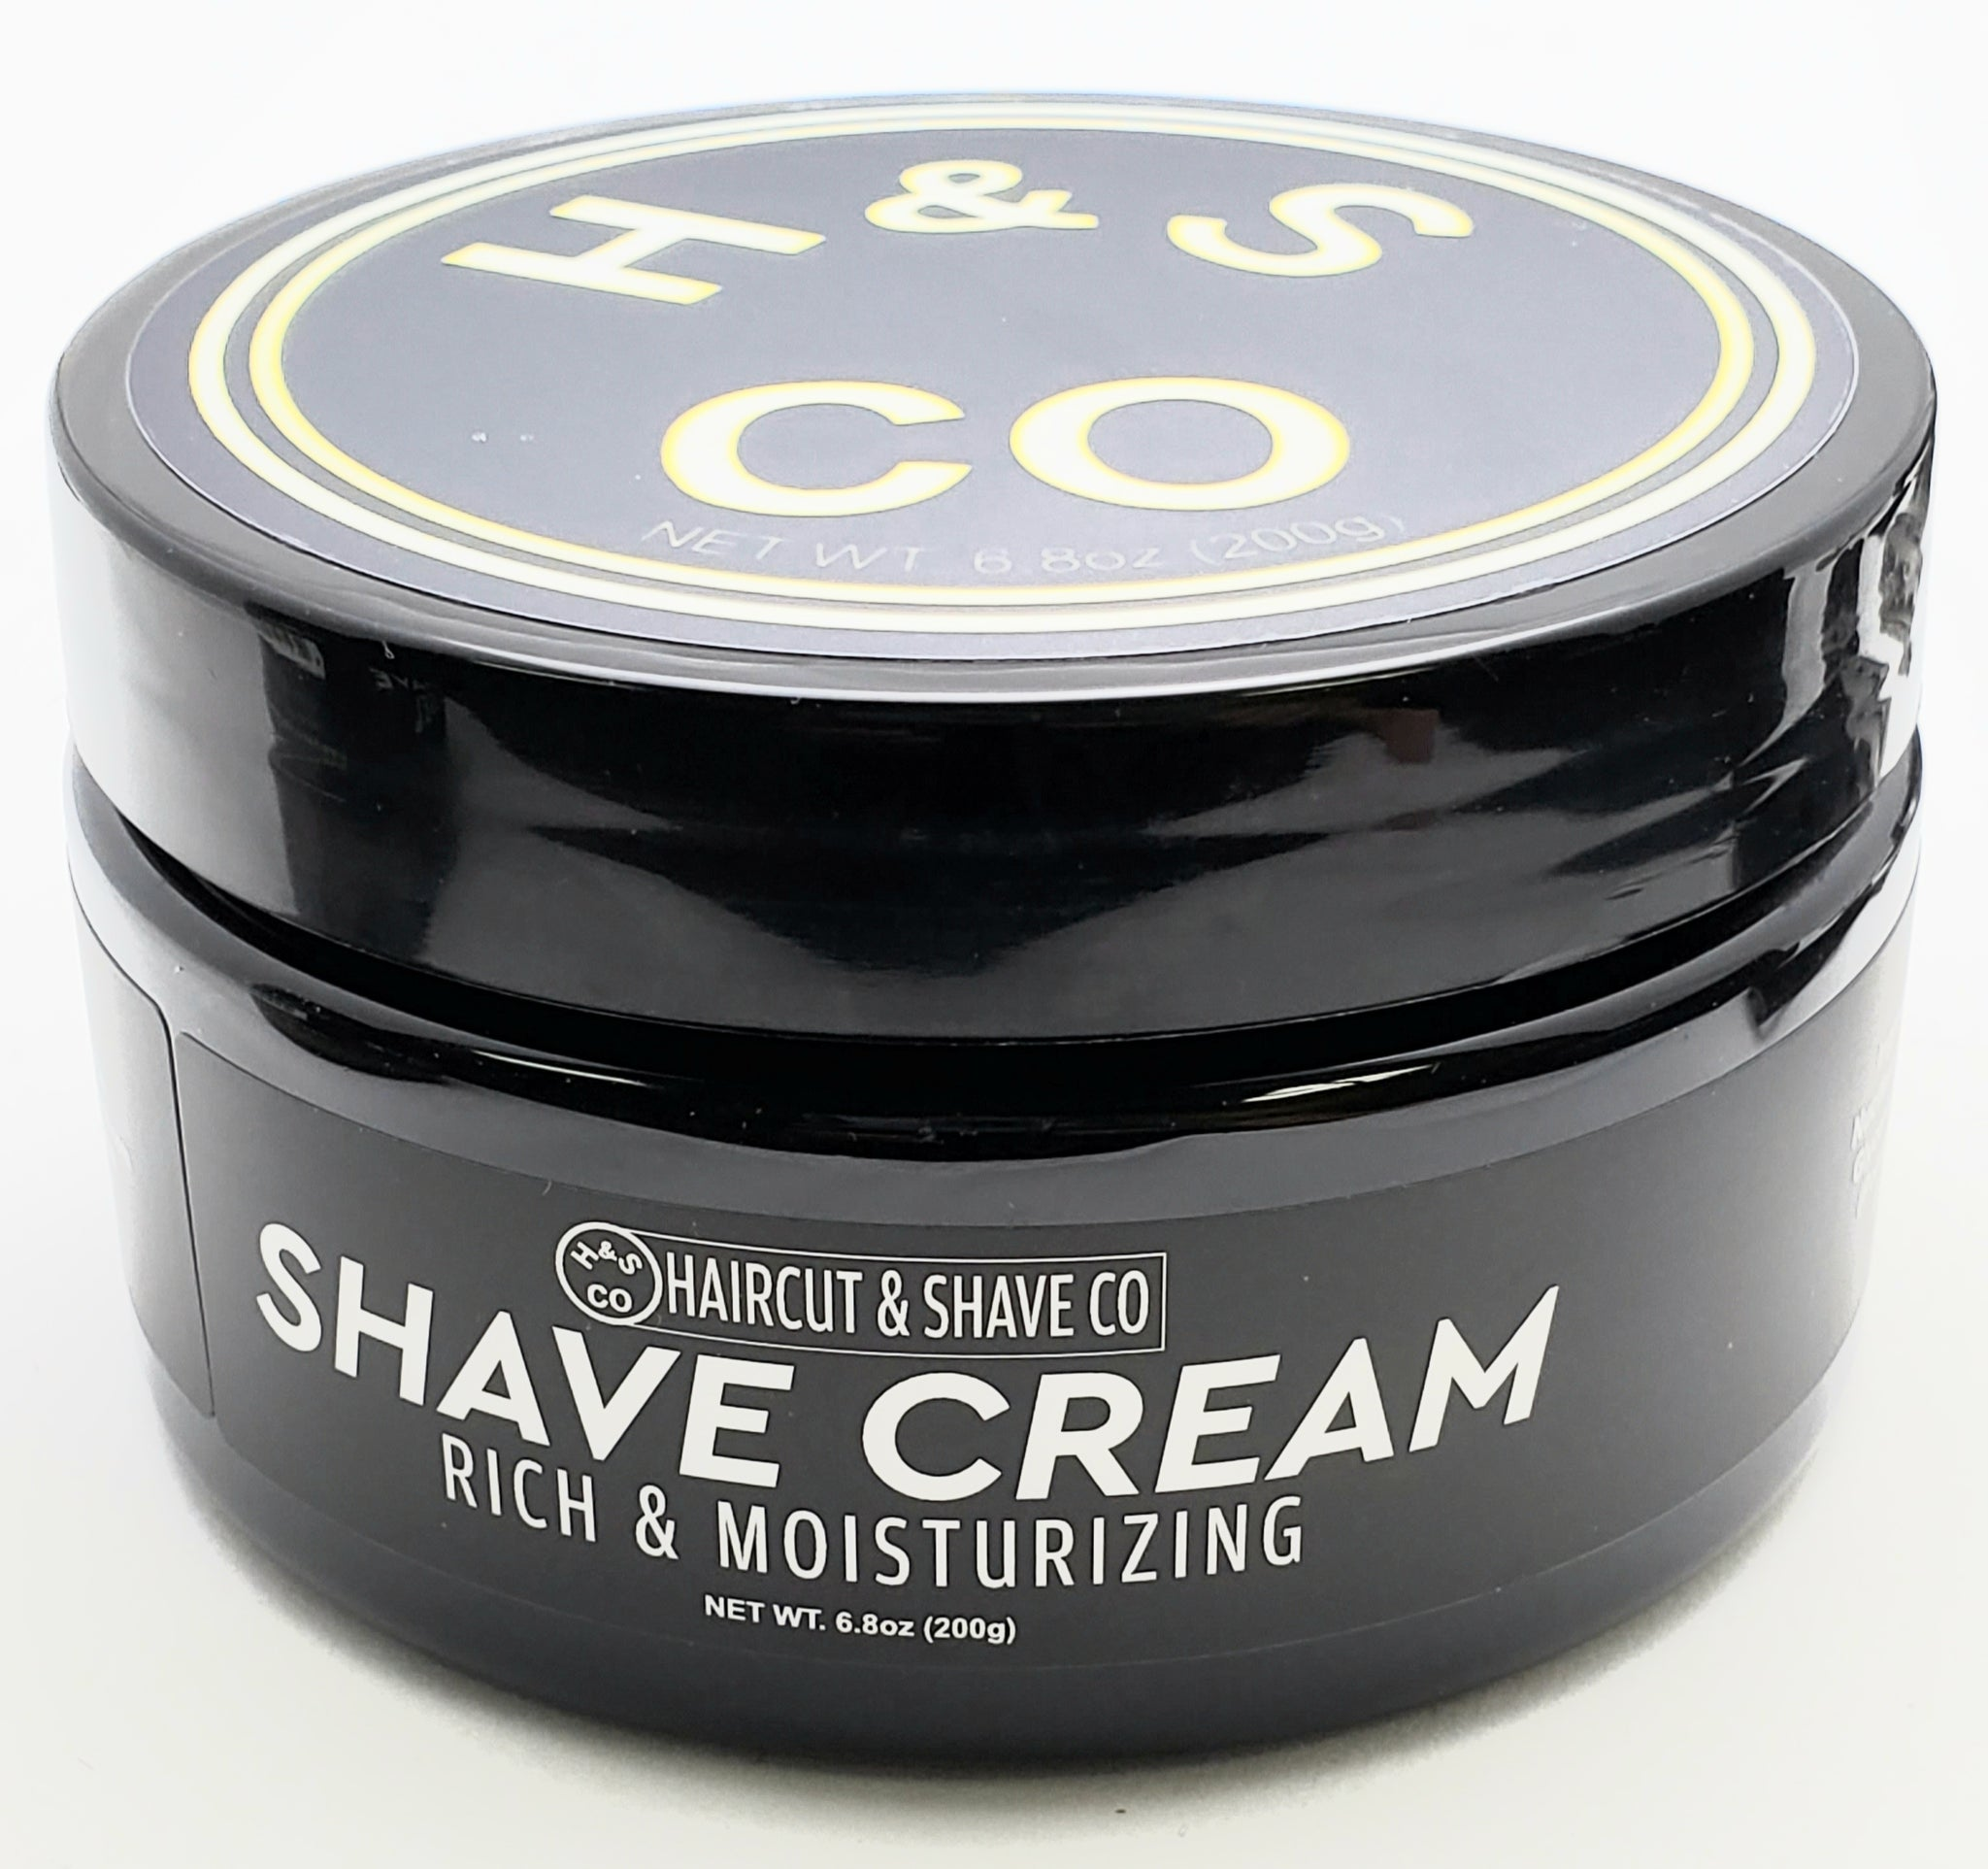 Haircut and Shave Co. Shave Cream Rich and Moisturizing.